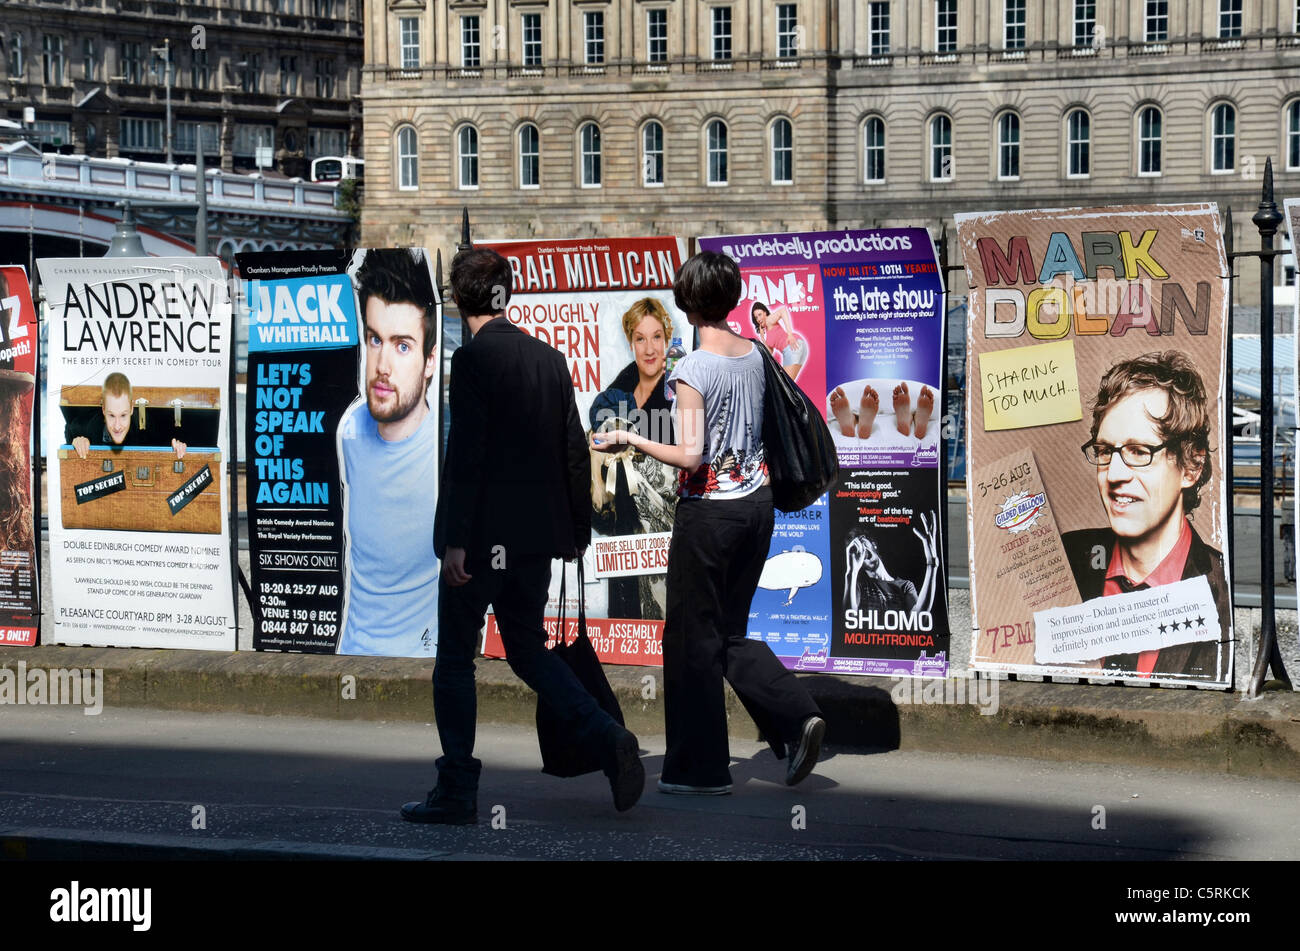 A couple walk by posters advertising shows on the 2011 Edinburgh Festival Fringe with the New Town as a backdrop. - Stock Image